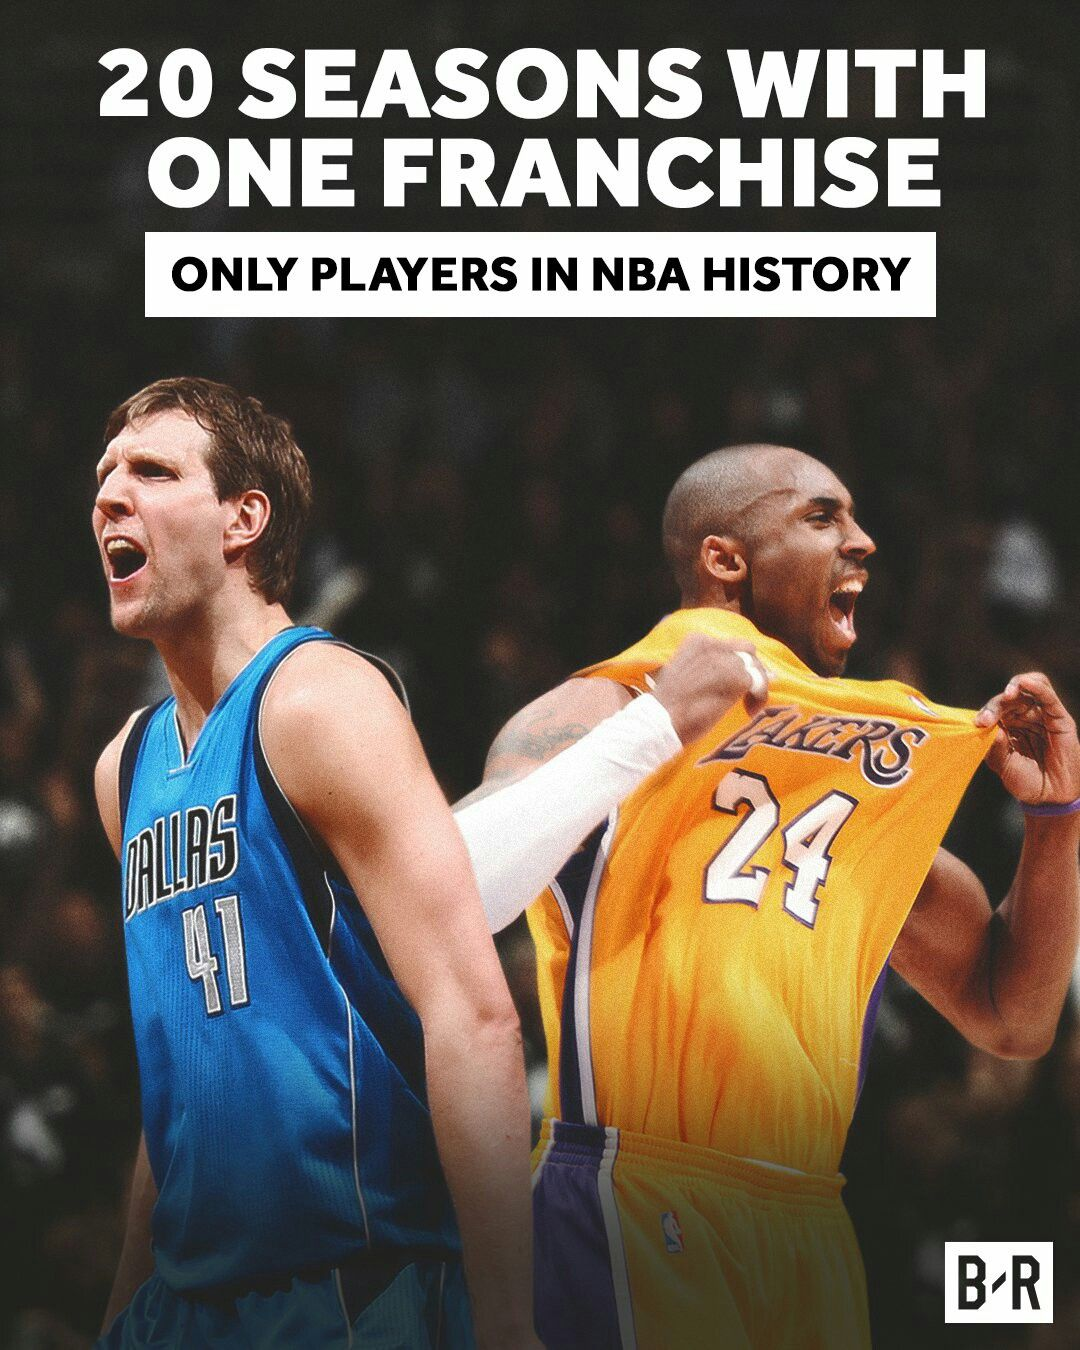 Pin by Alain Keith Cabardo Daguio on NBA Nba mvp, Nba, Kobe